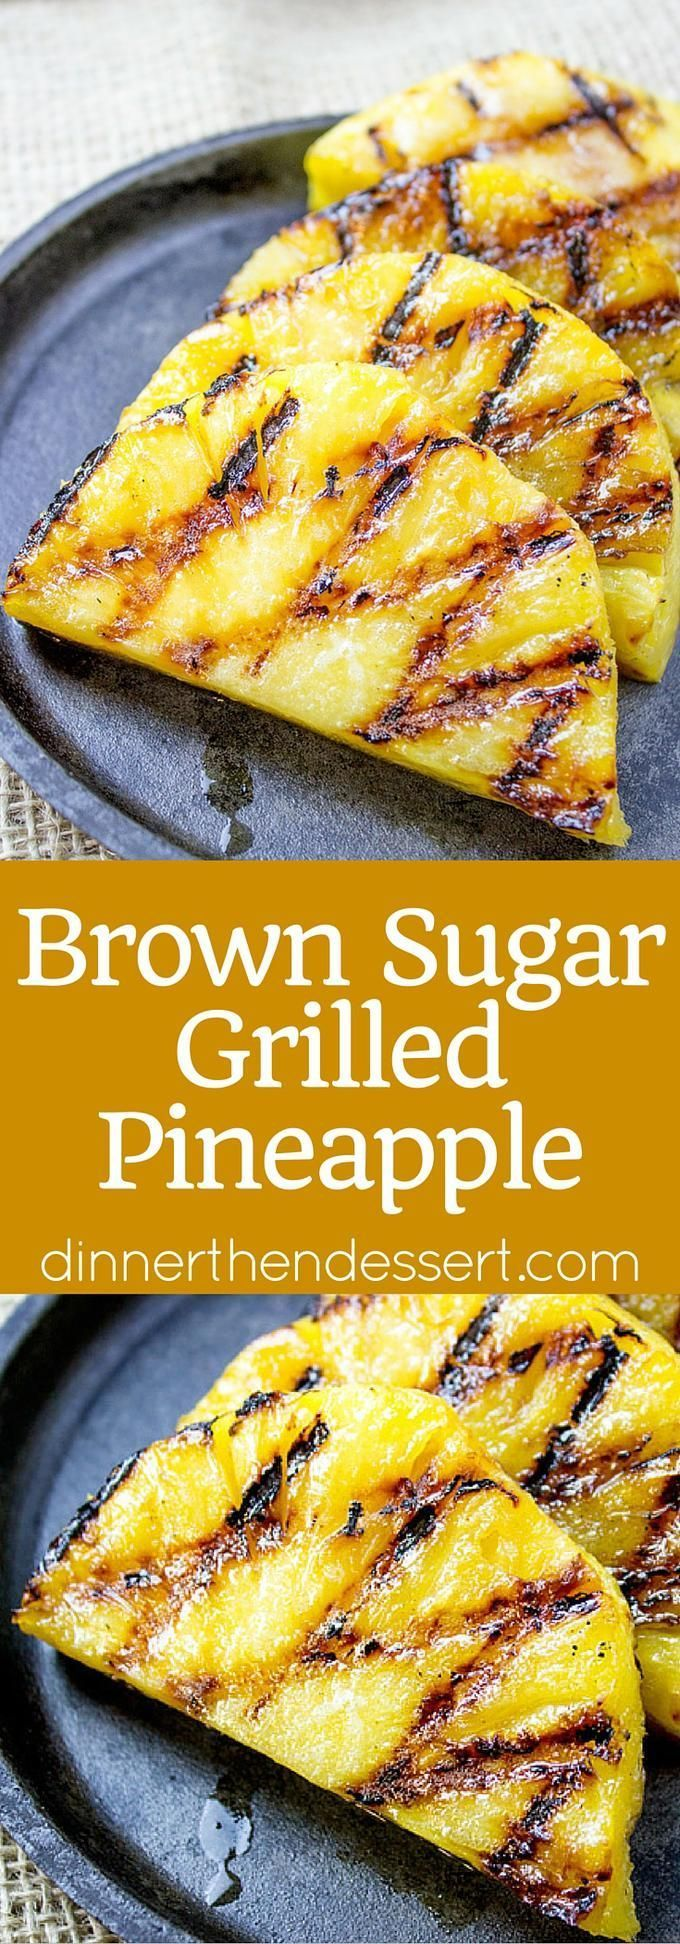 Easy Brown Sugar Grilled Pineapple made in a grill pan is the quintessential side dish to any summer dishes you're making. When grilled the pineapple gets soft, tender and melts in your mouth! (Grilling Recipes For Camping)